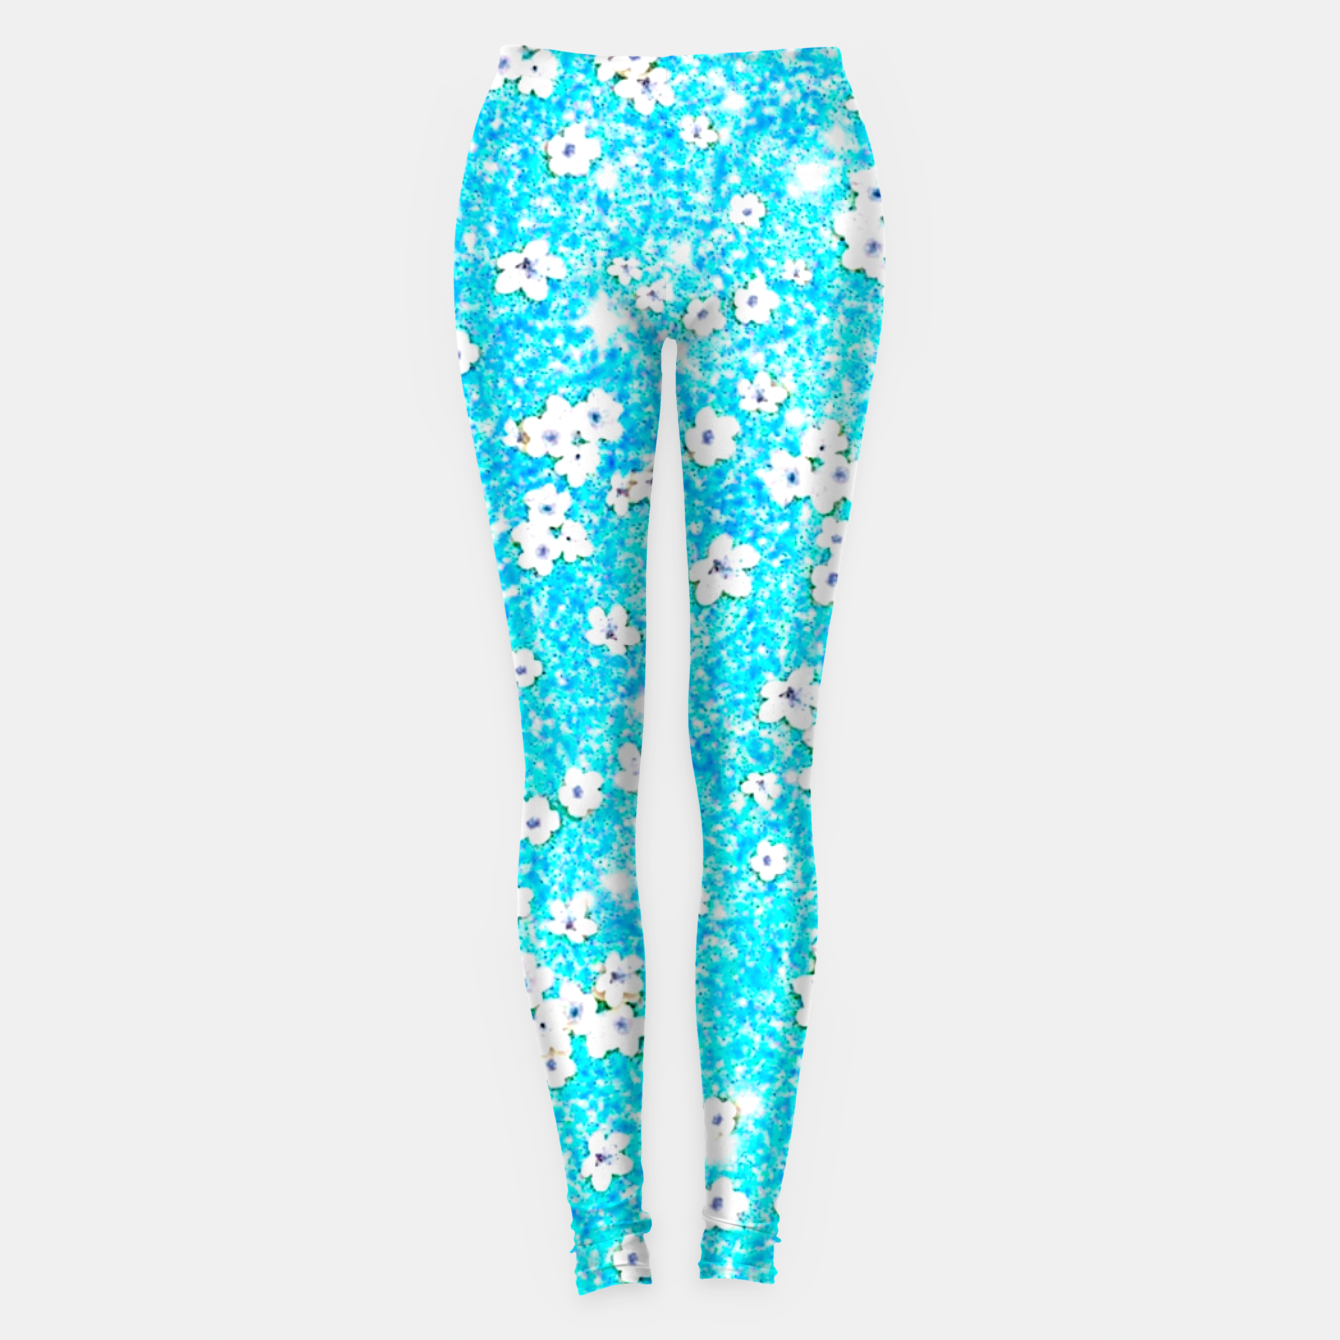 Zdjęcie turquoise blue white floral pattern Leggings - Live Heroes